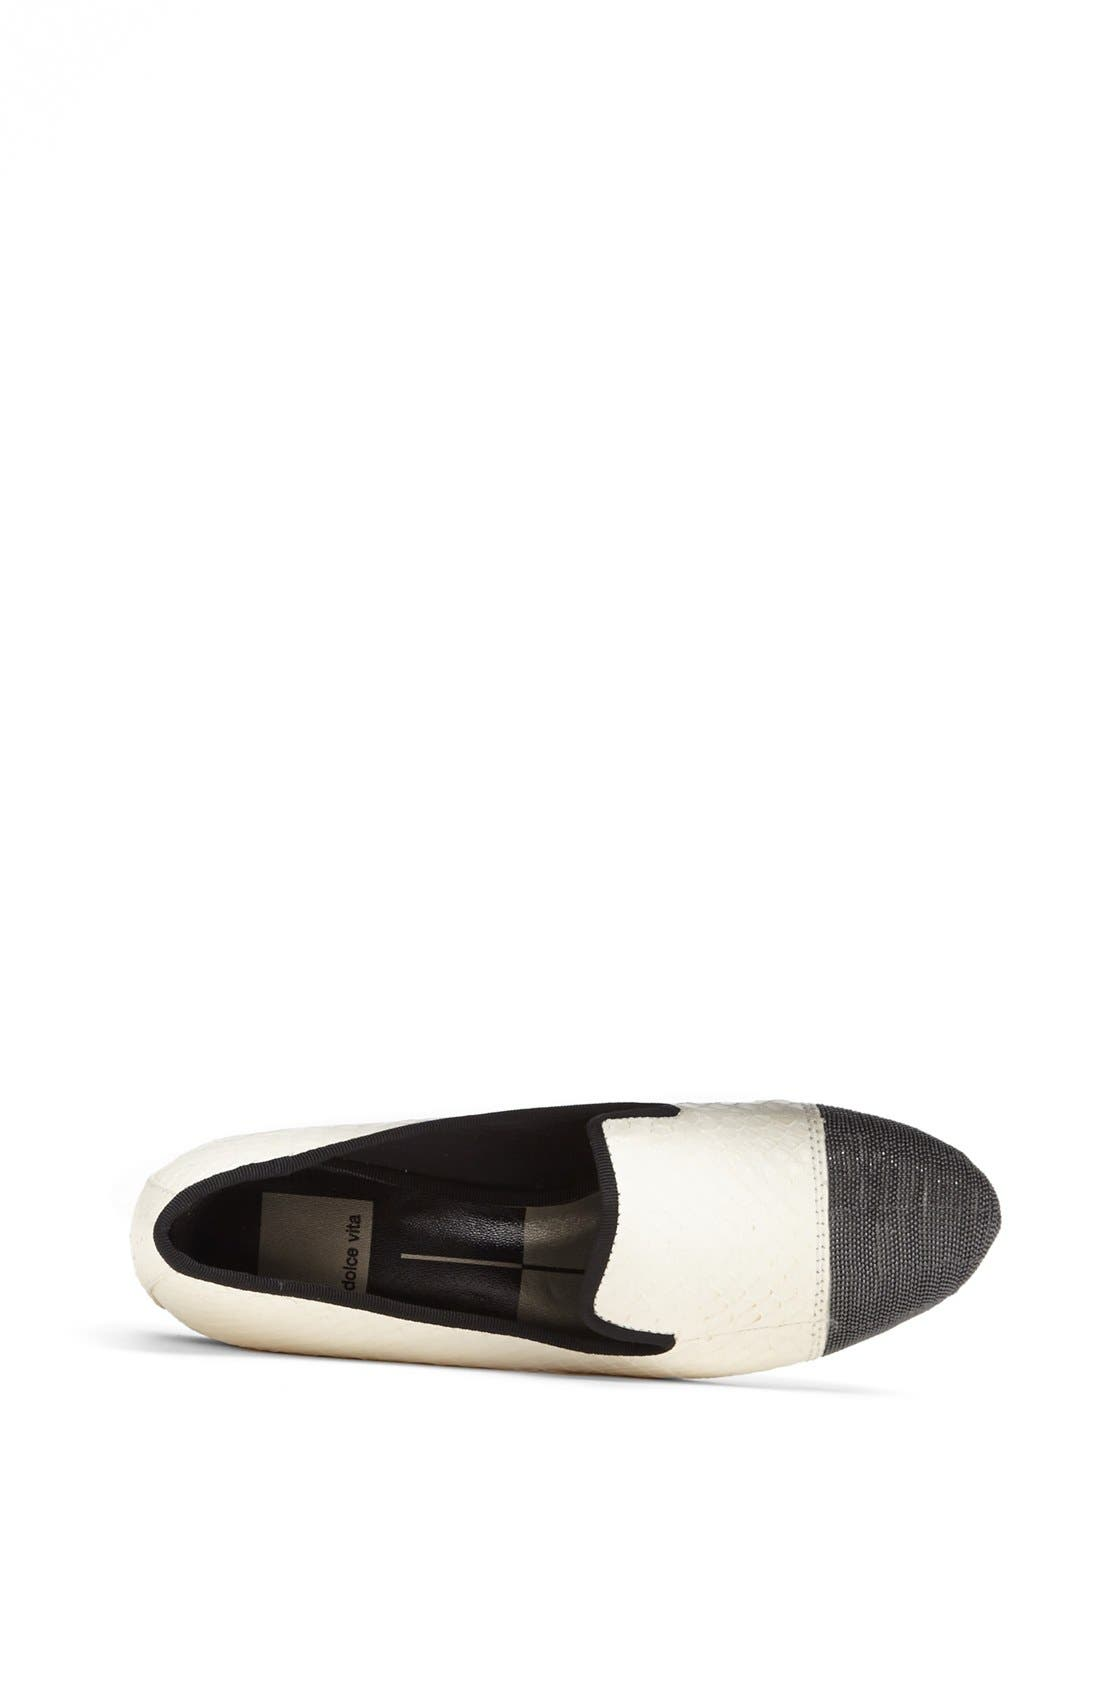 Alternate Image 3  - Dolce Vita Loafer Flat